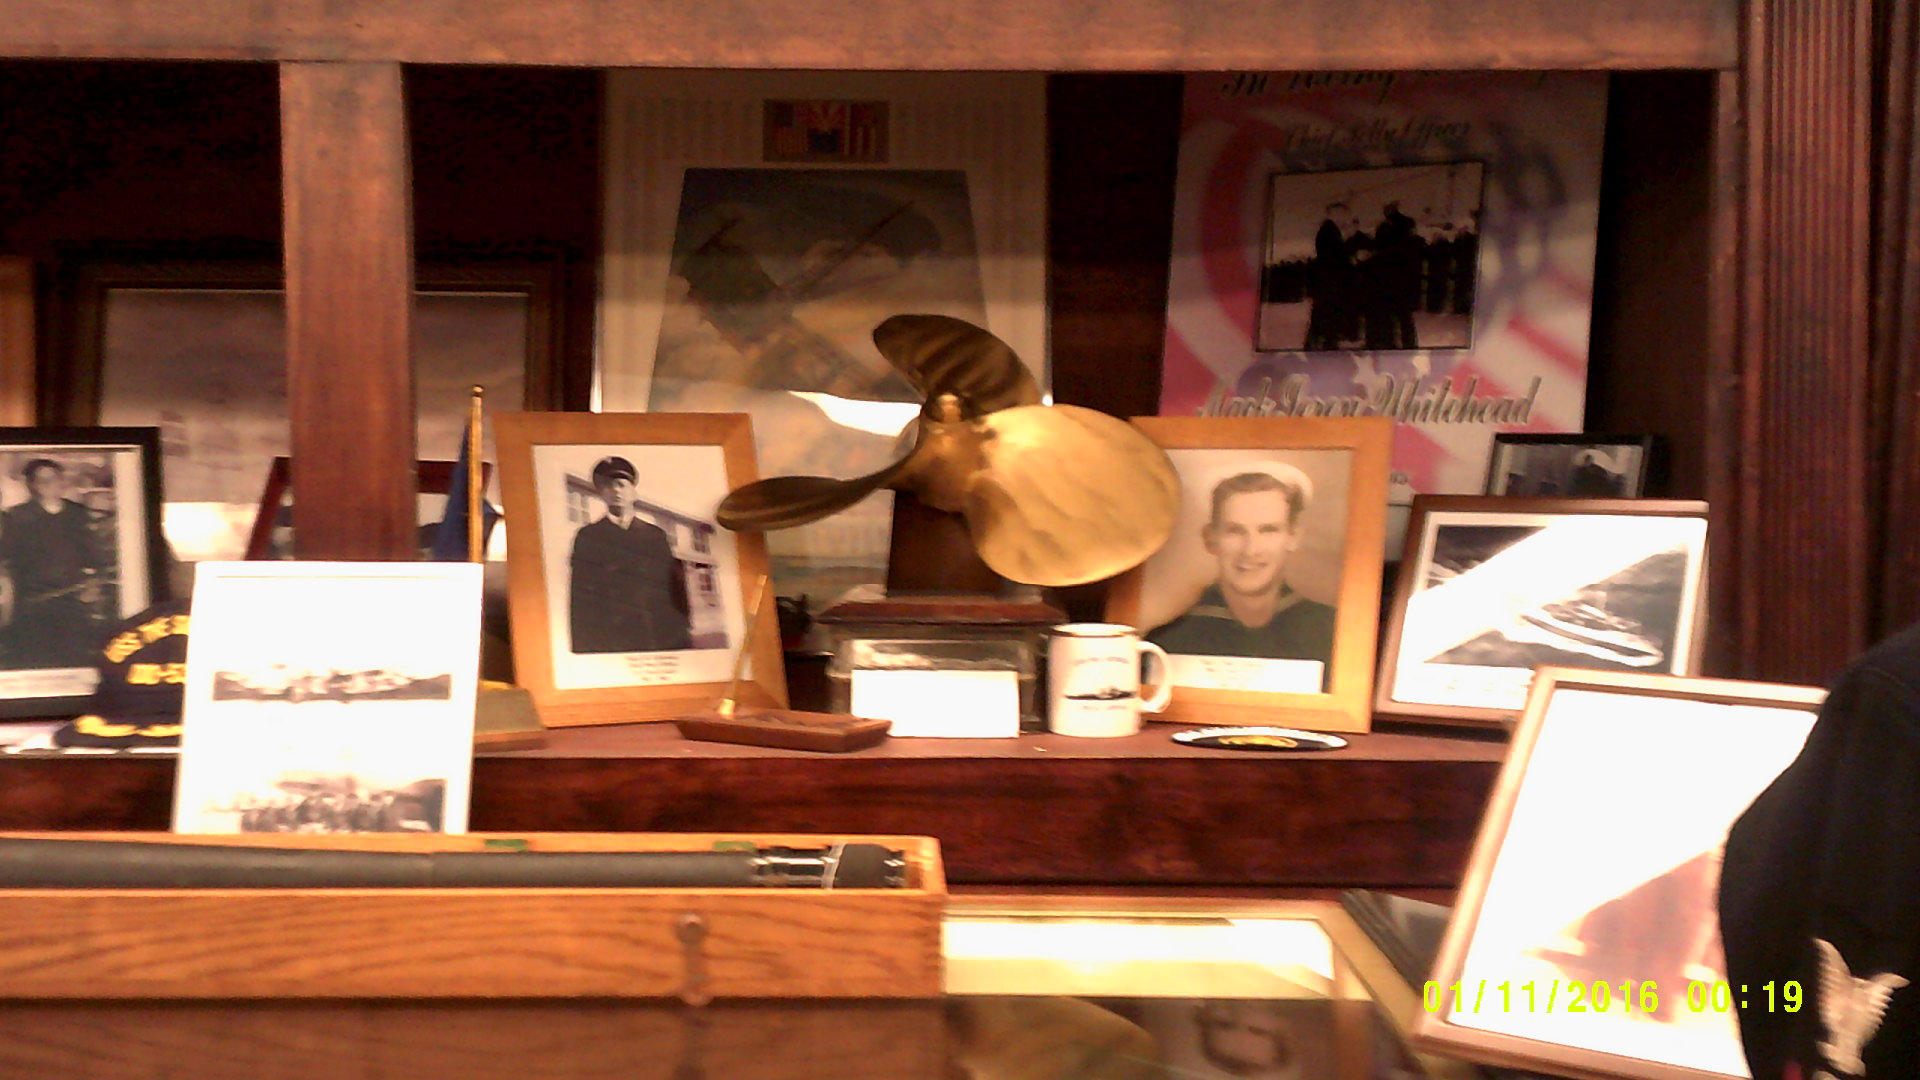 A display of nautical memorabilia.